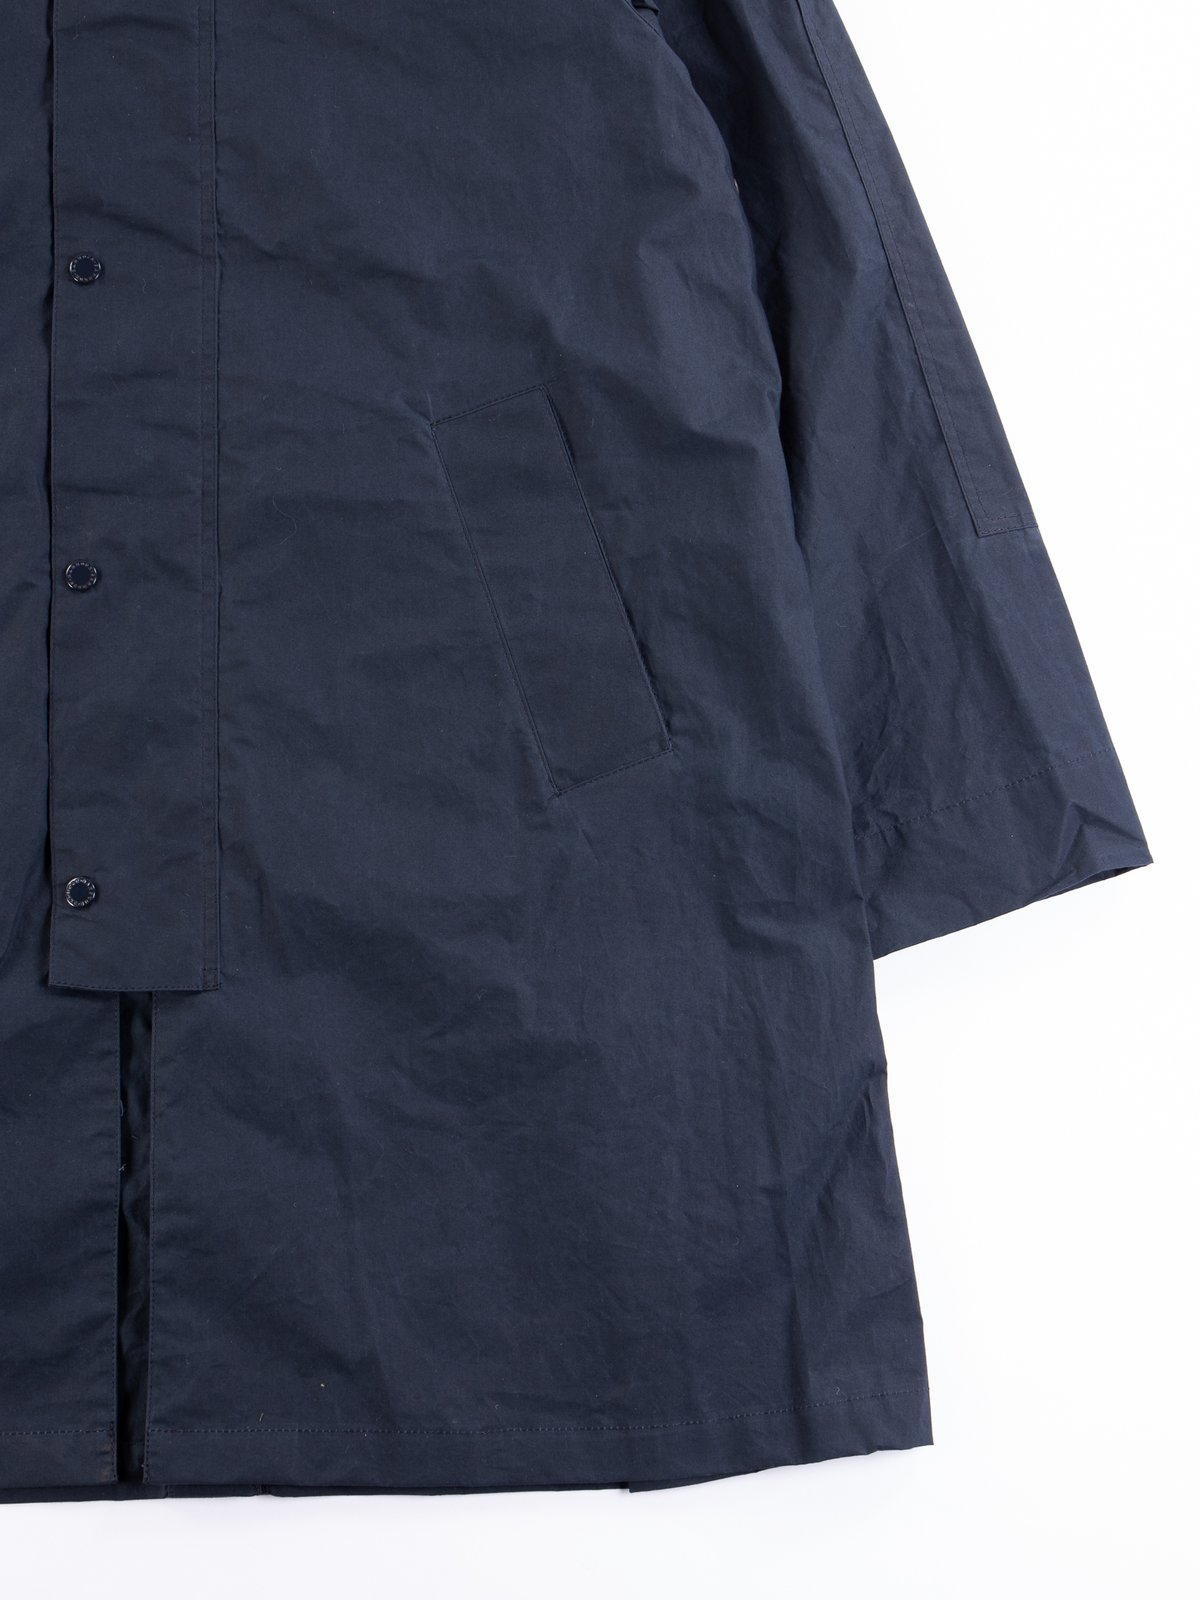 Navy South Overcoat - Image 4